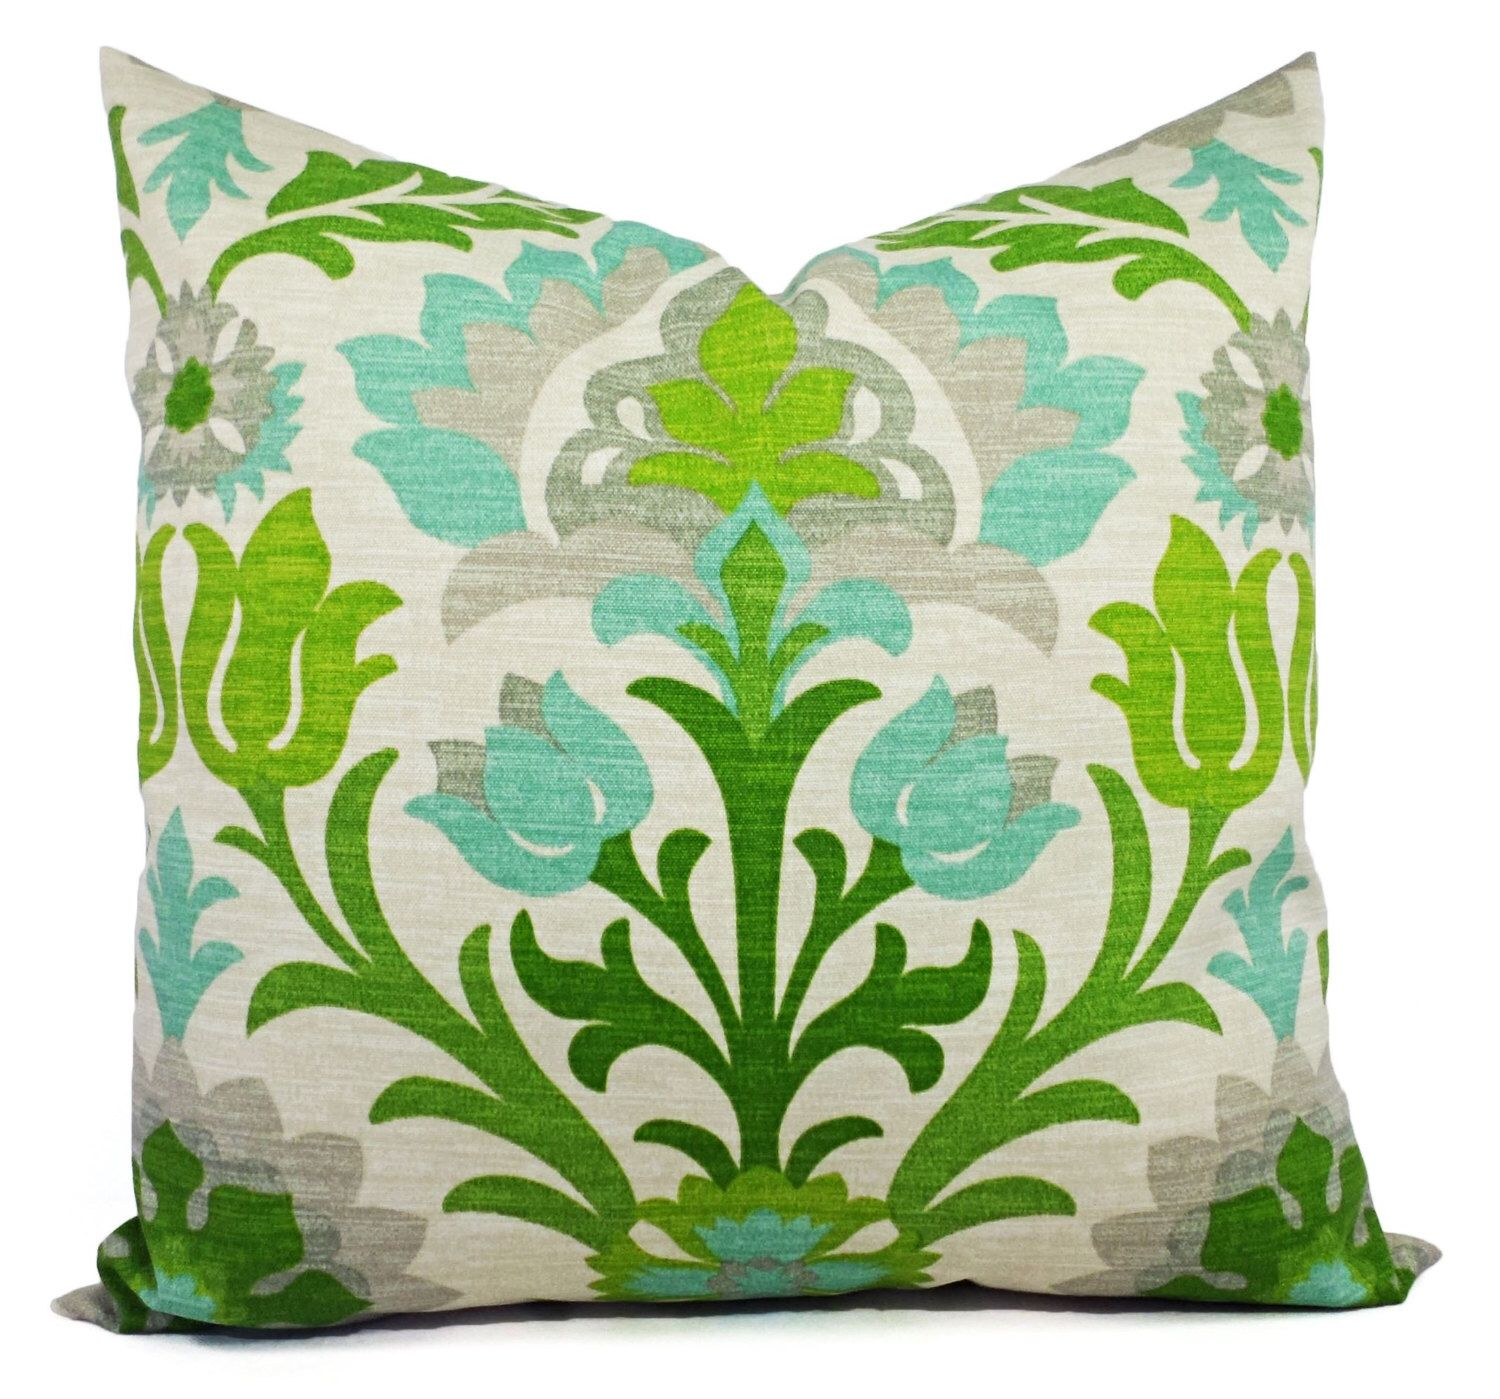 Two Green Outdoor Pillow Covers Green Outdoor Pillows Green